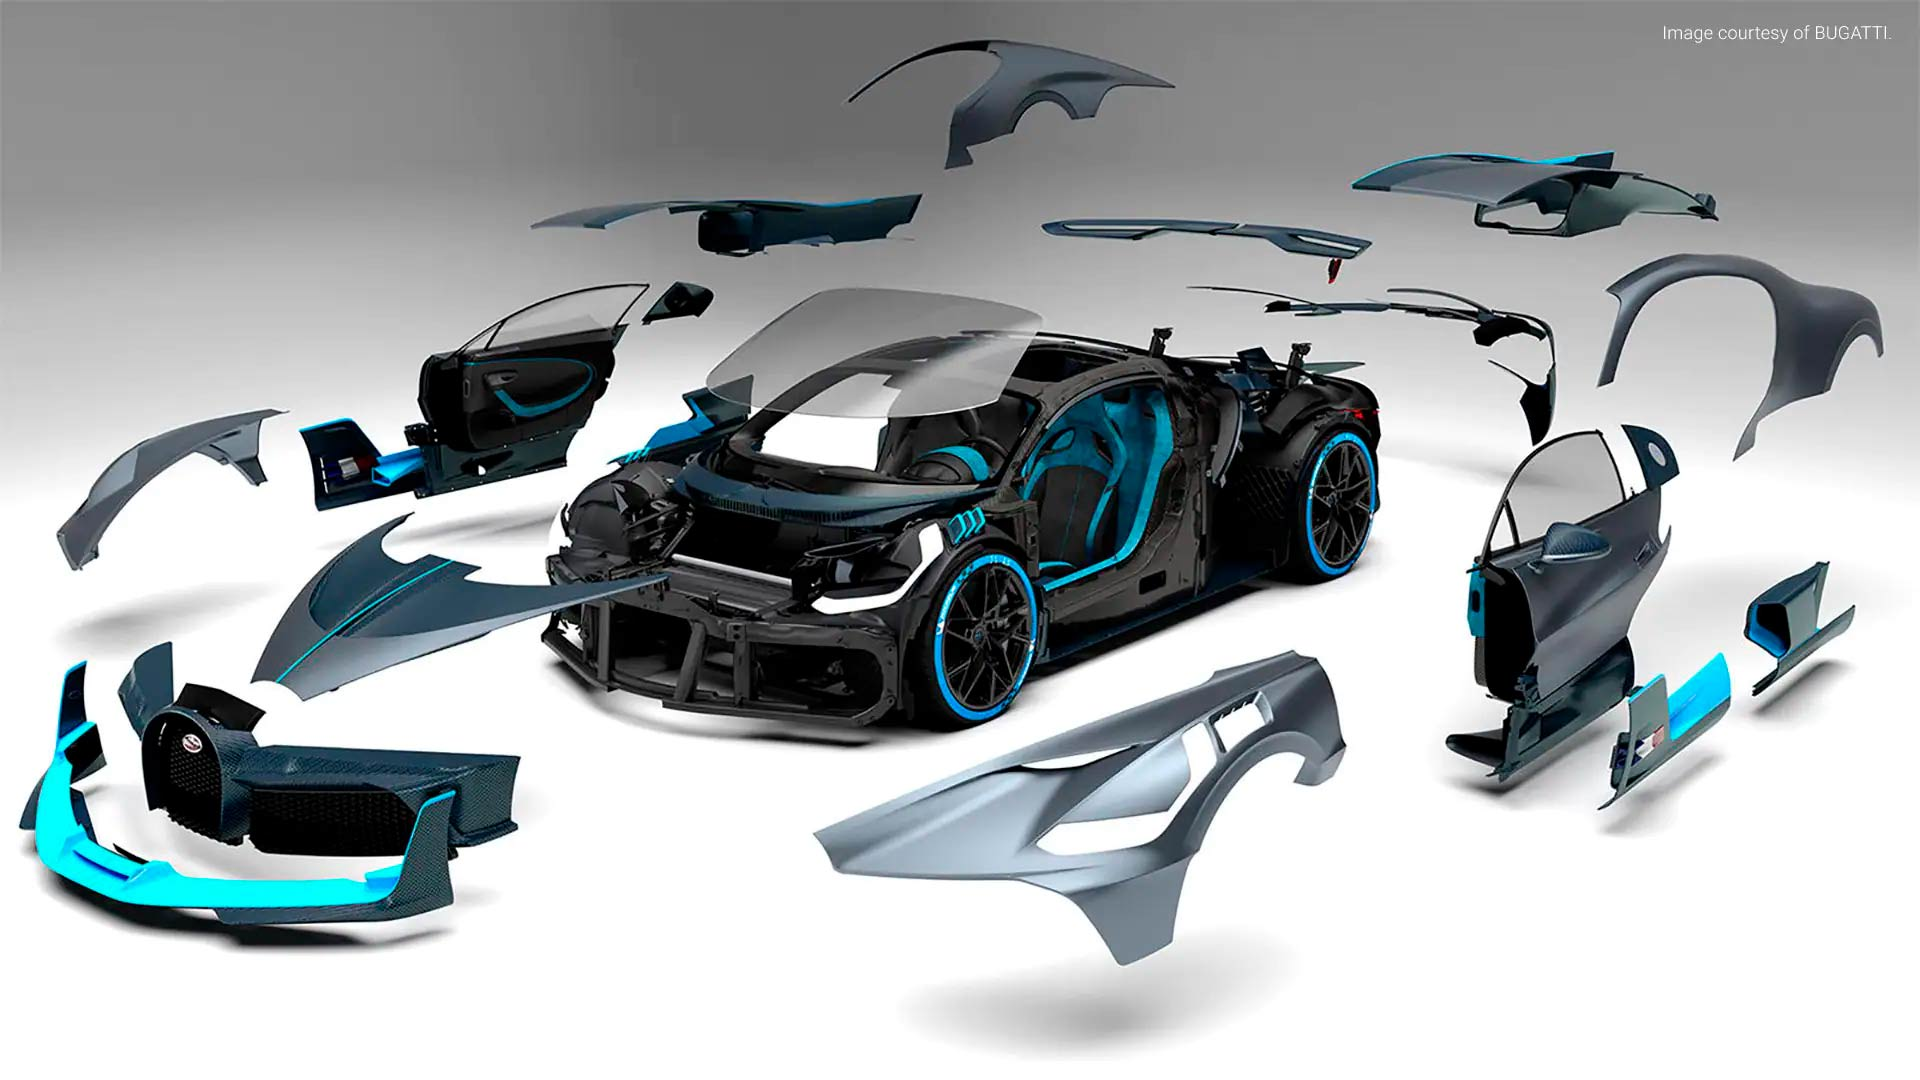 VIVE Business – Virtual Reality Delivers Immersive, Remote Collaboration for Automotive Design Teams